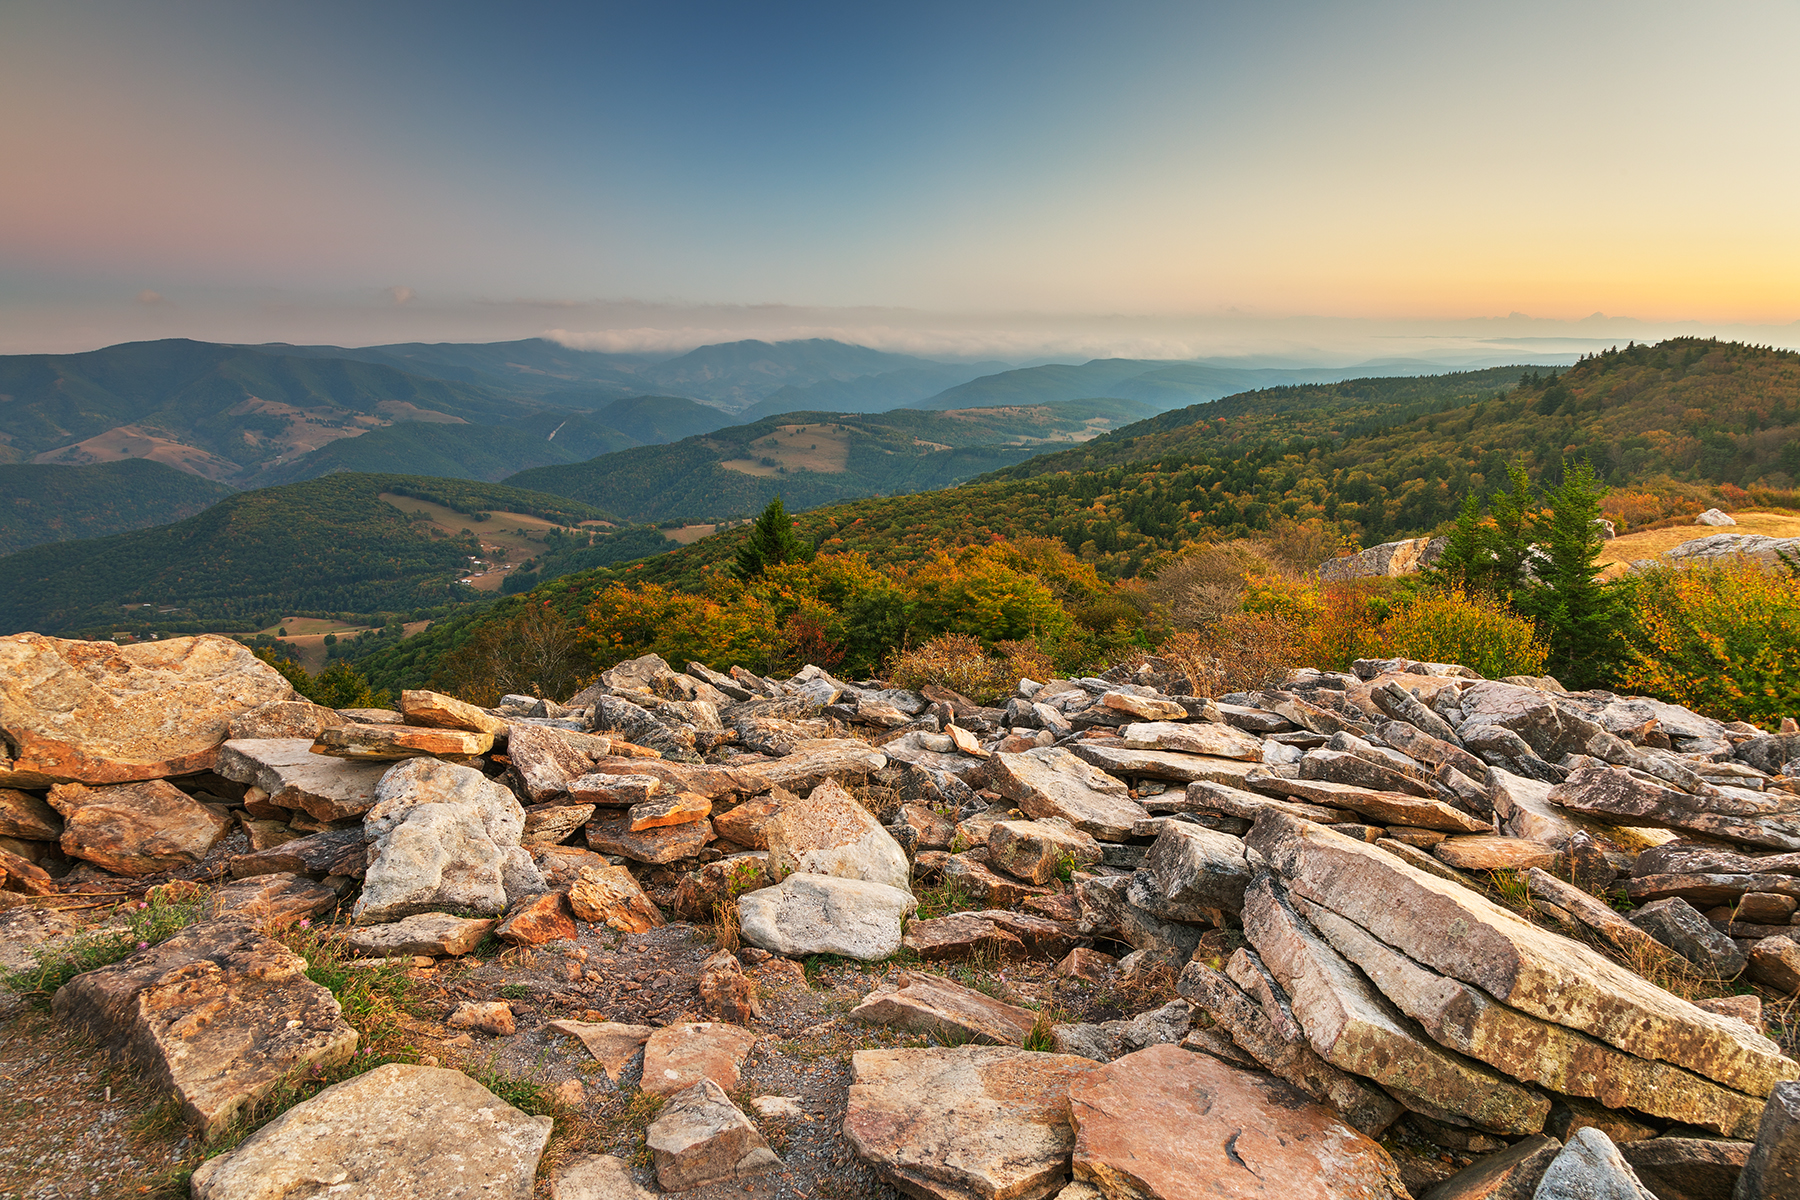 Spruce Knob Mountain Sunset - HDR, Raw, Shadow, Shades, Shade, HQ Photo